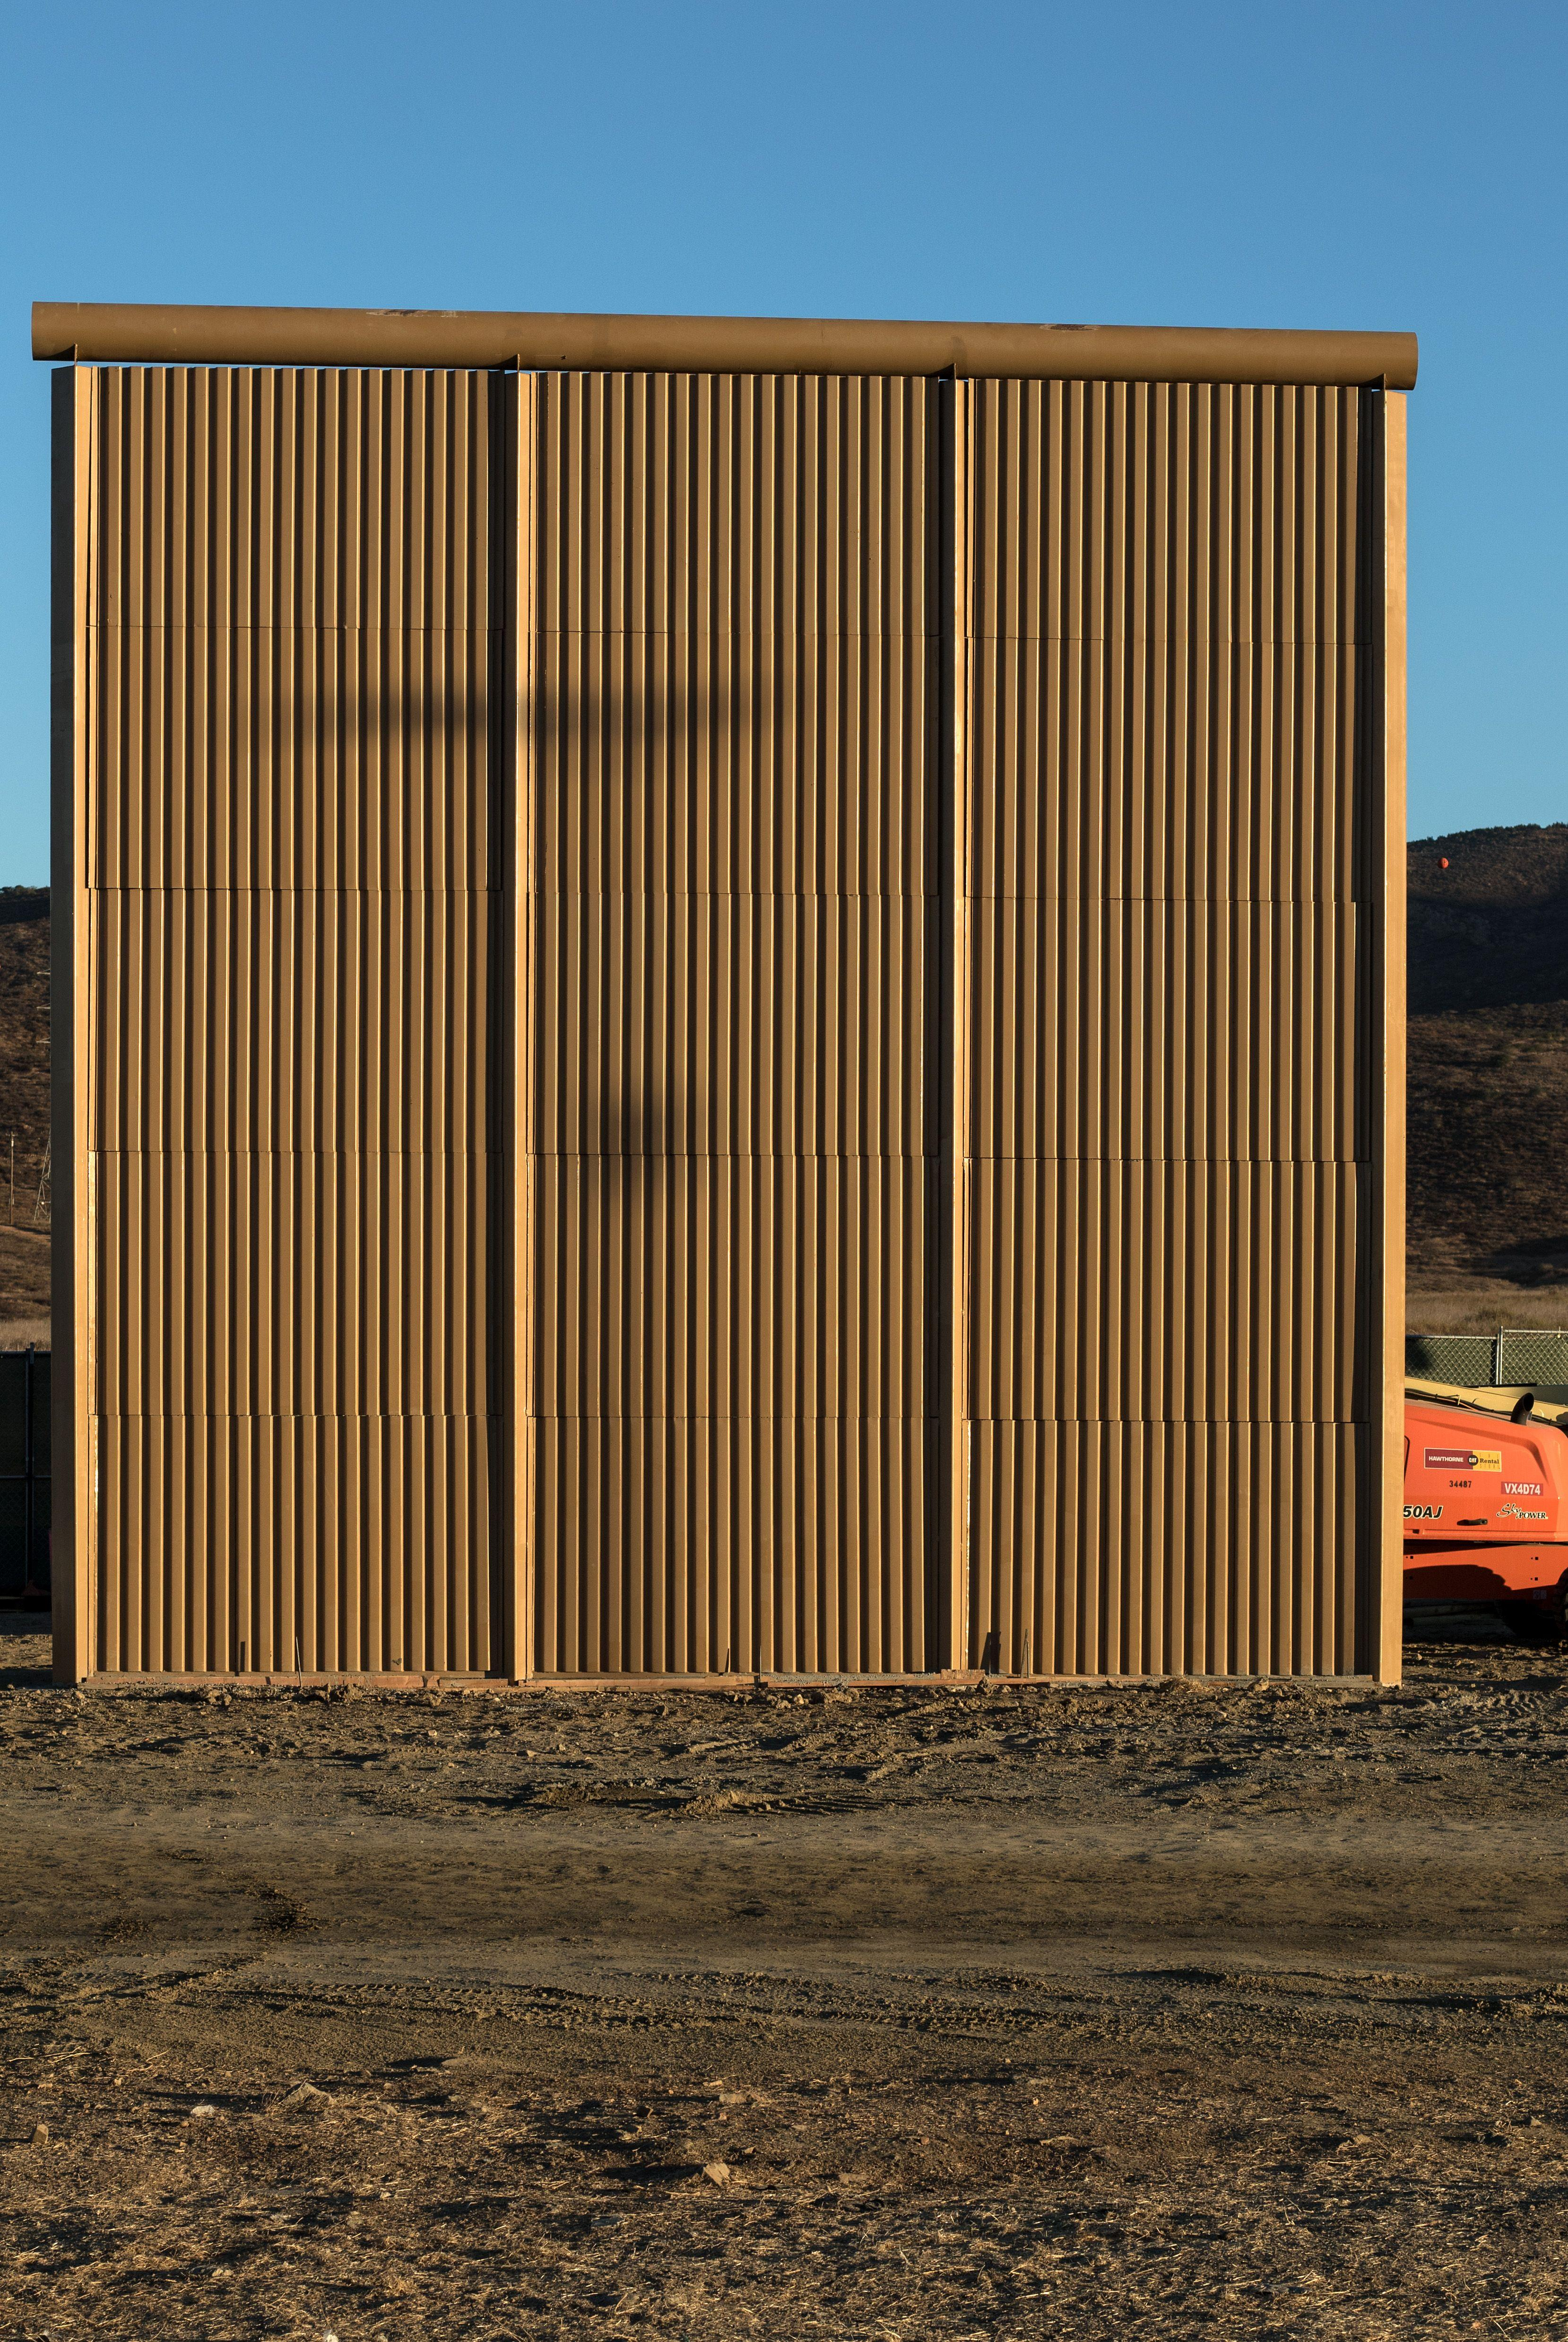 The walls are up to 30ft high (Picture: Getty)